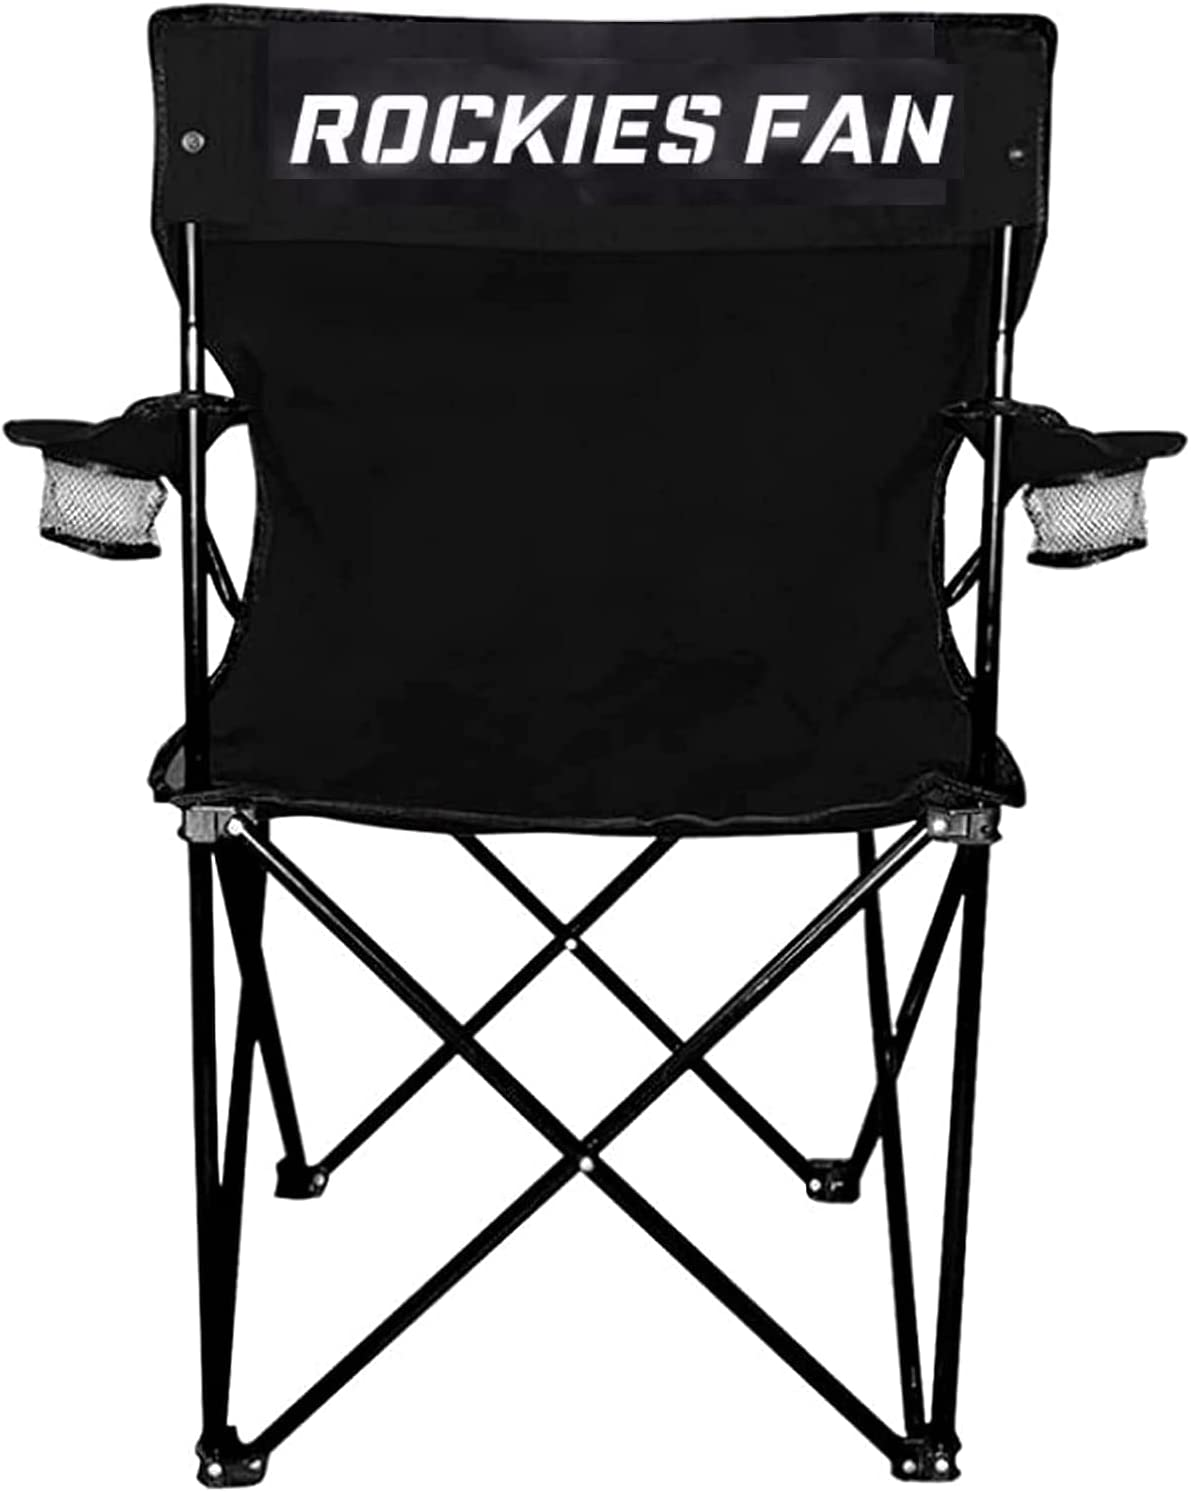 Rockies Fan Camping Chair Carry with Bag Don't miss We OFFer at cheap prices the campaign